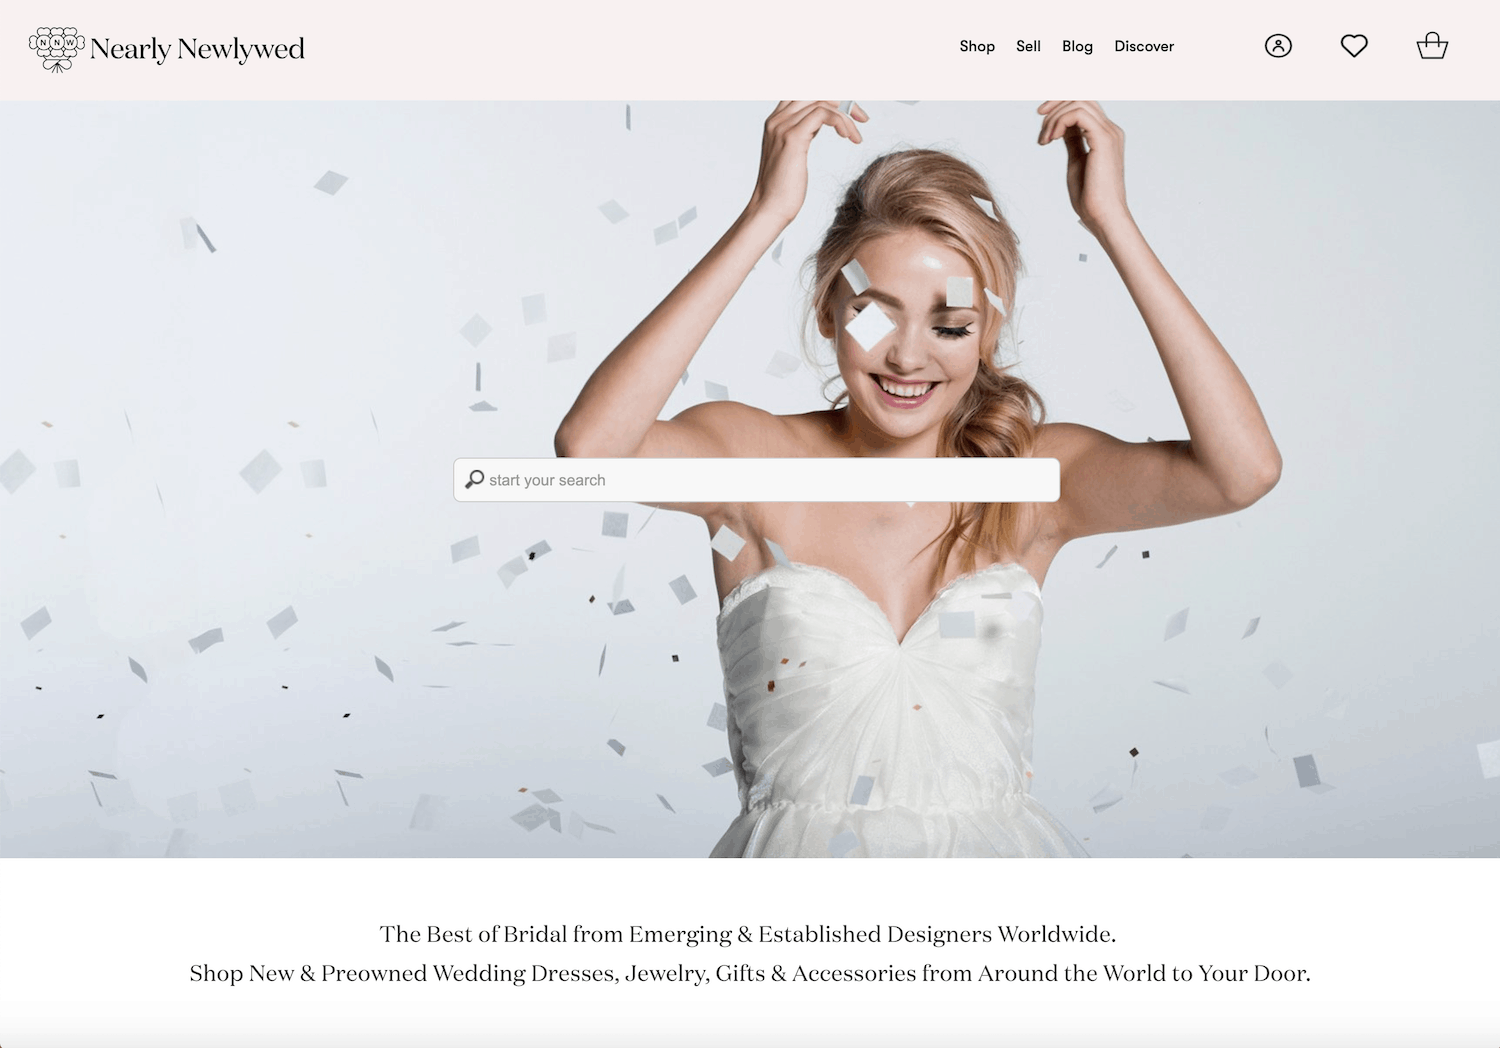 Designer Wedding Dresses and Bridal Gowns Under $1500 Nearly Newlywed